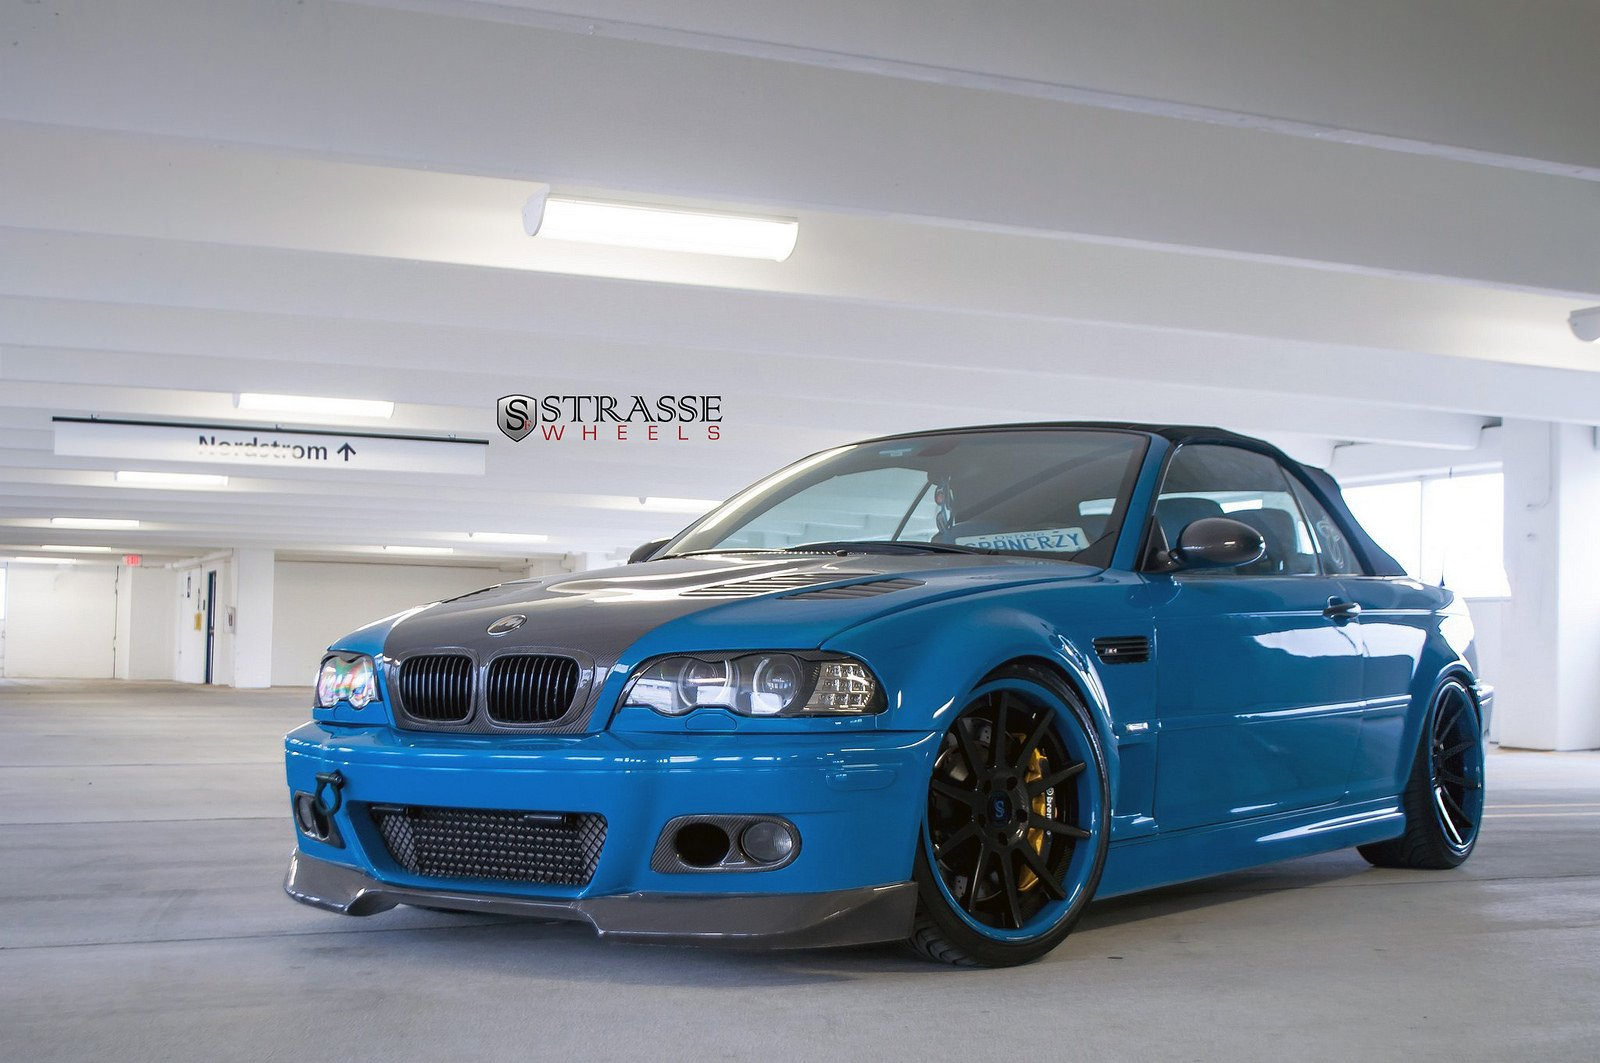 bmw e46 m3 convertible blue strasse tuning wheels wallpaper 1600x1063 390367 wallpaperup. Black Bedroom Furniture Sets. Home Design Ideas